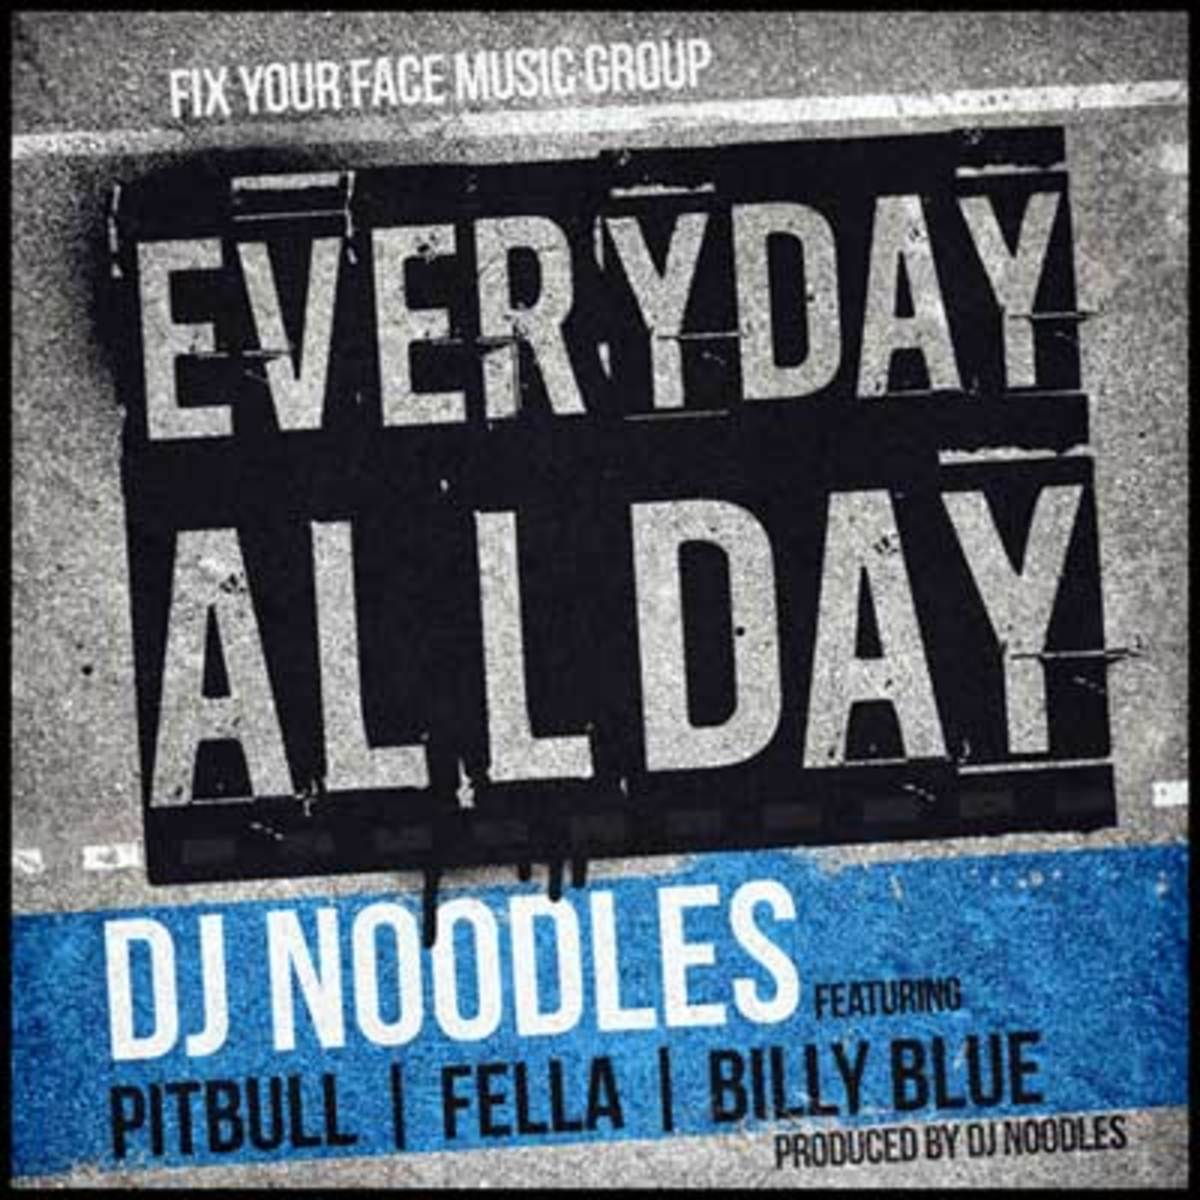 djnoodles-everydayallday.jpg